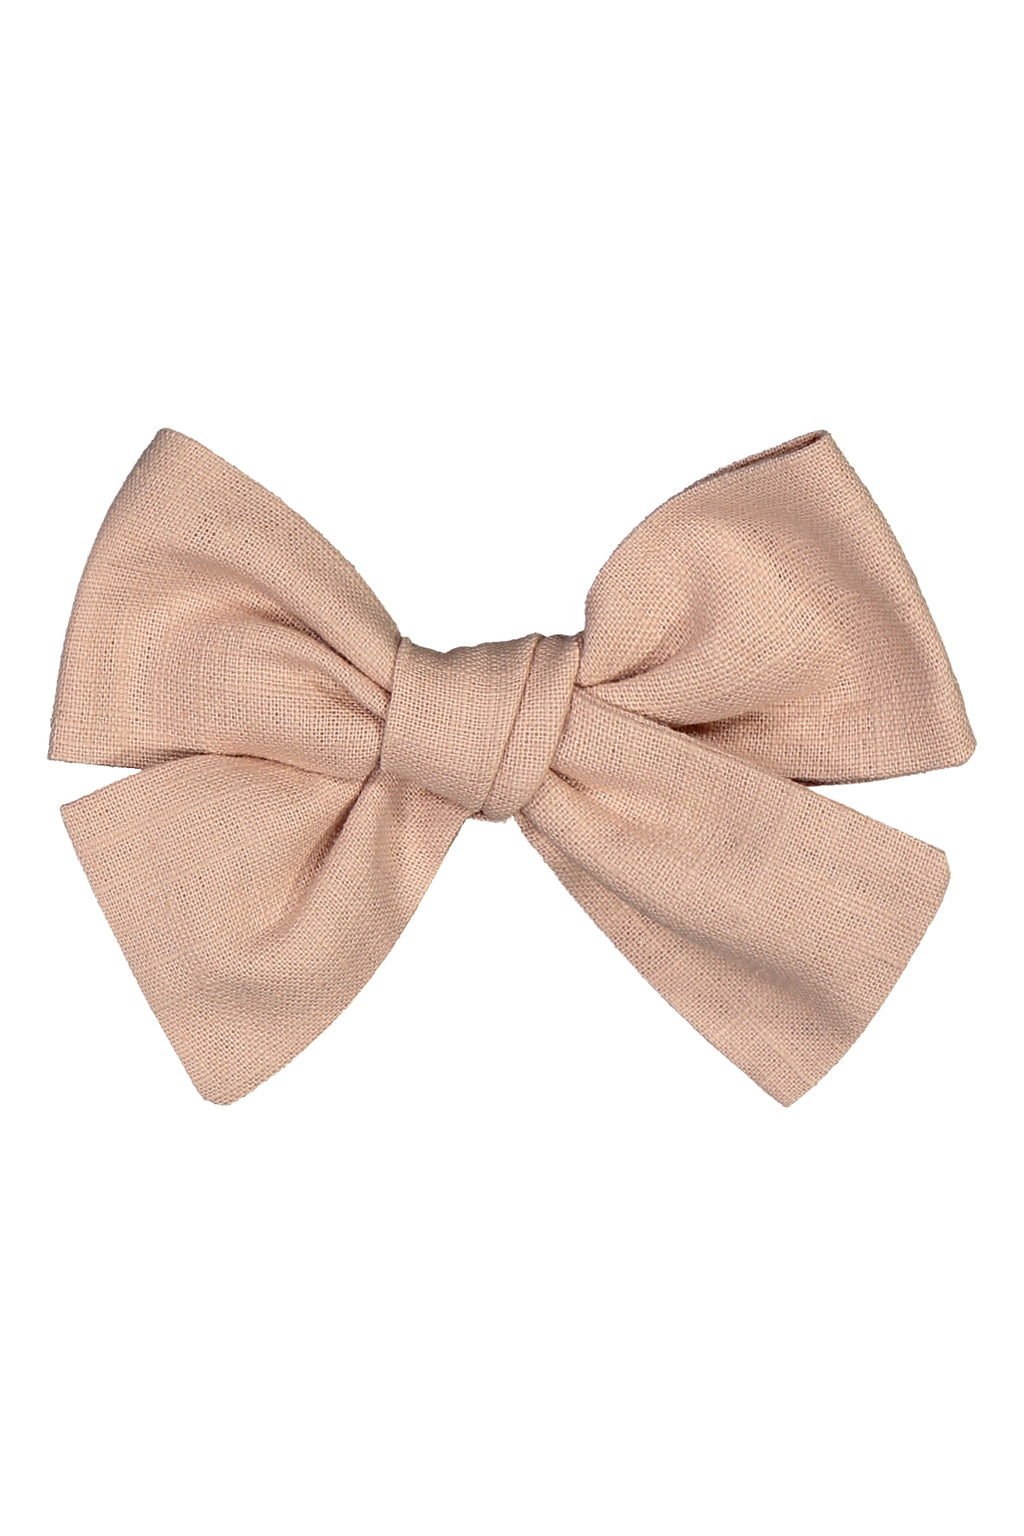 "Hairclip ""Bow"" I dusty rose oder  beige oder cognac"